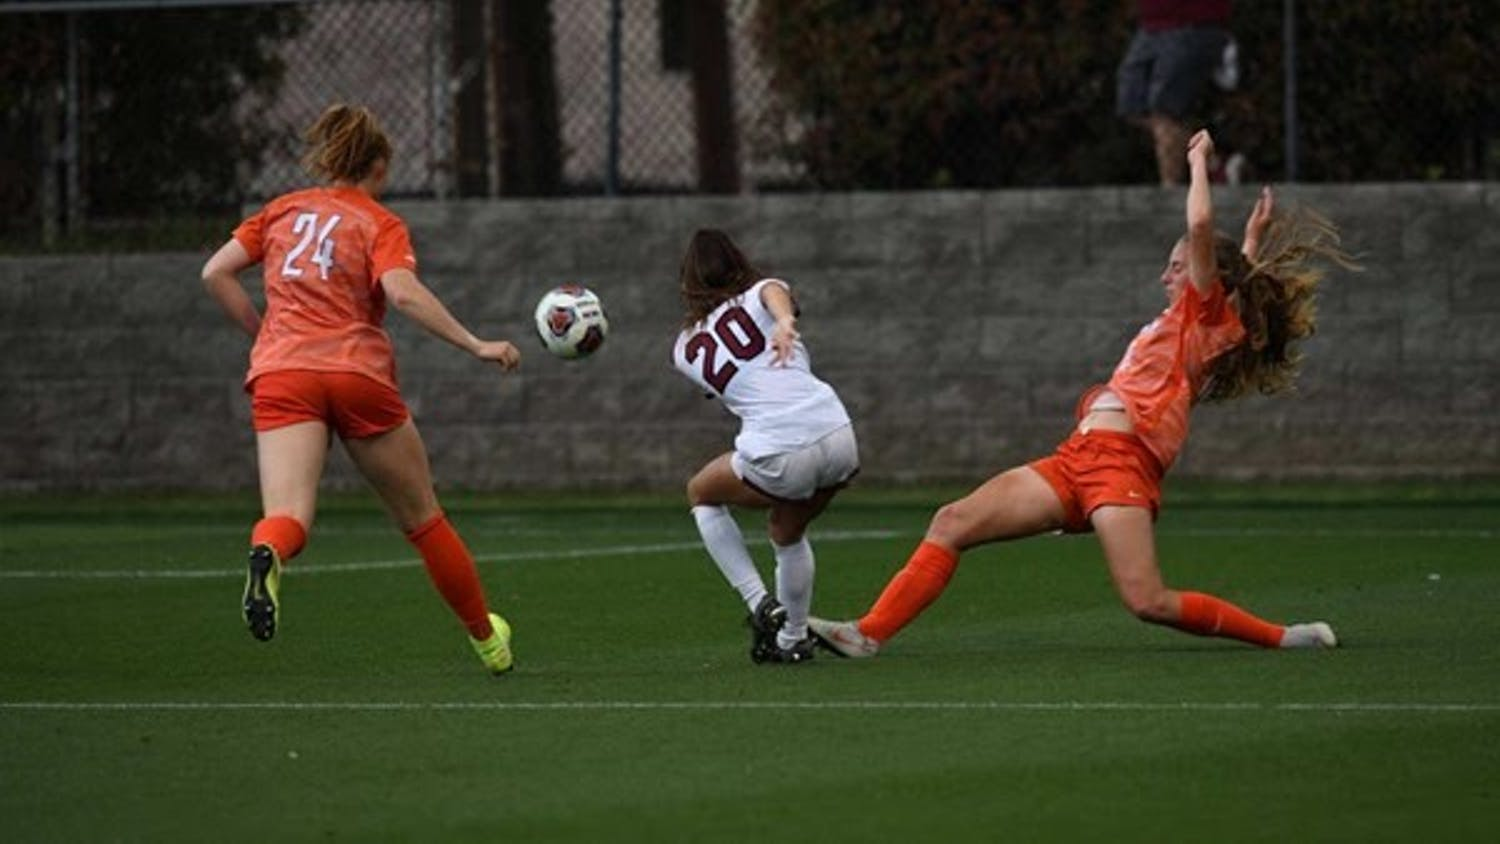 Gamecock freshman forward Corinna Zulloin between two Clemson players during their match on Saturday, April 10, 2021. The Gamecocks lost 2-1.